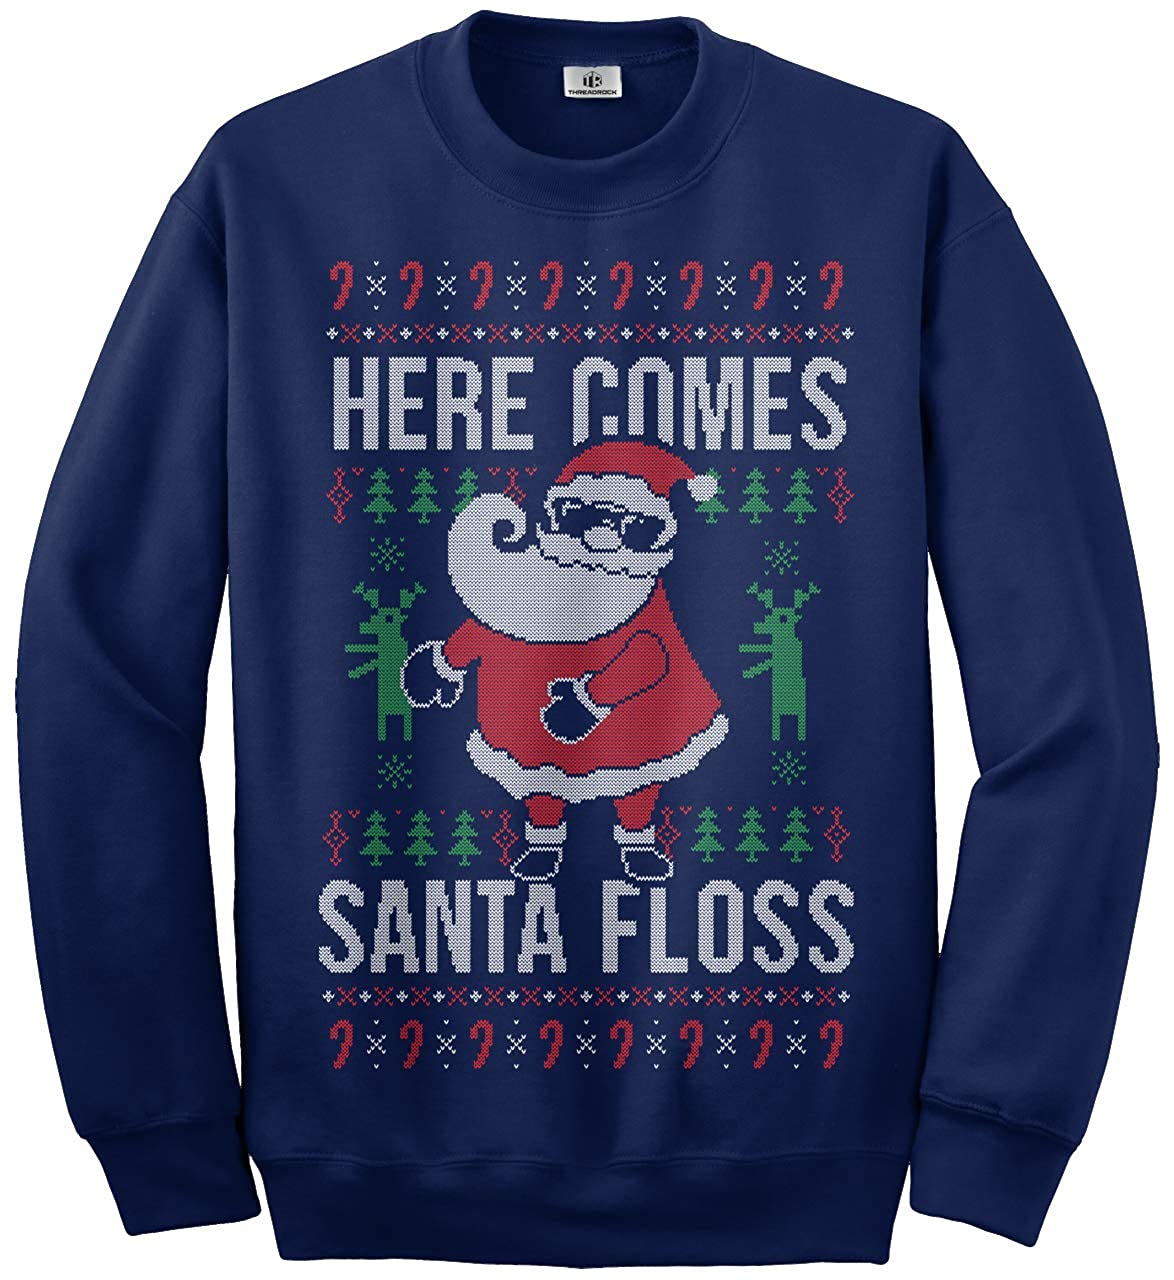 Threadrock Here Comes Santa Floss Ugly Christmas Sweater Kids Youth Sweatshirt TK01345-04